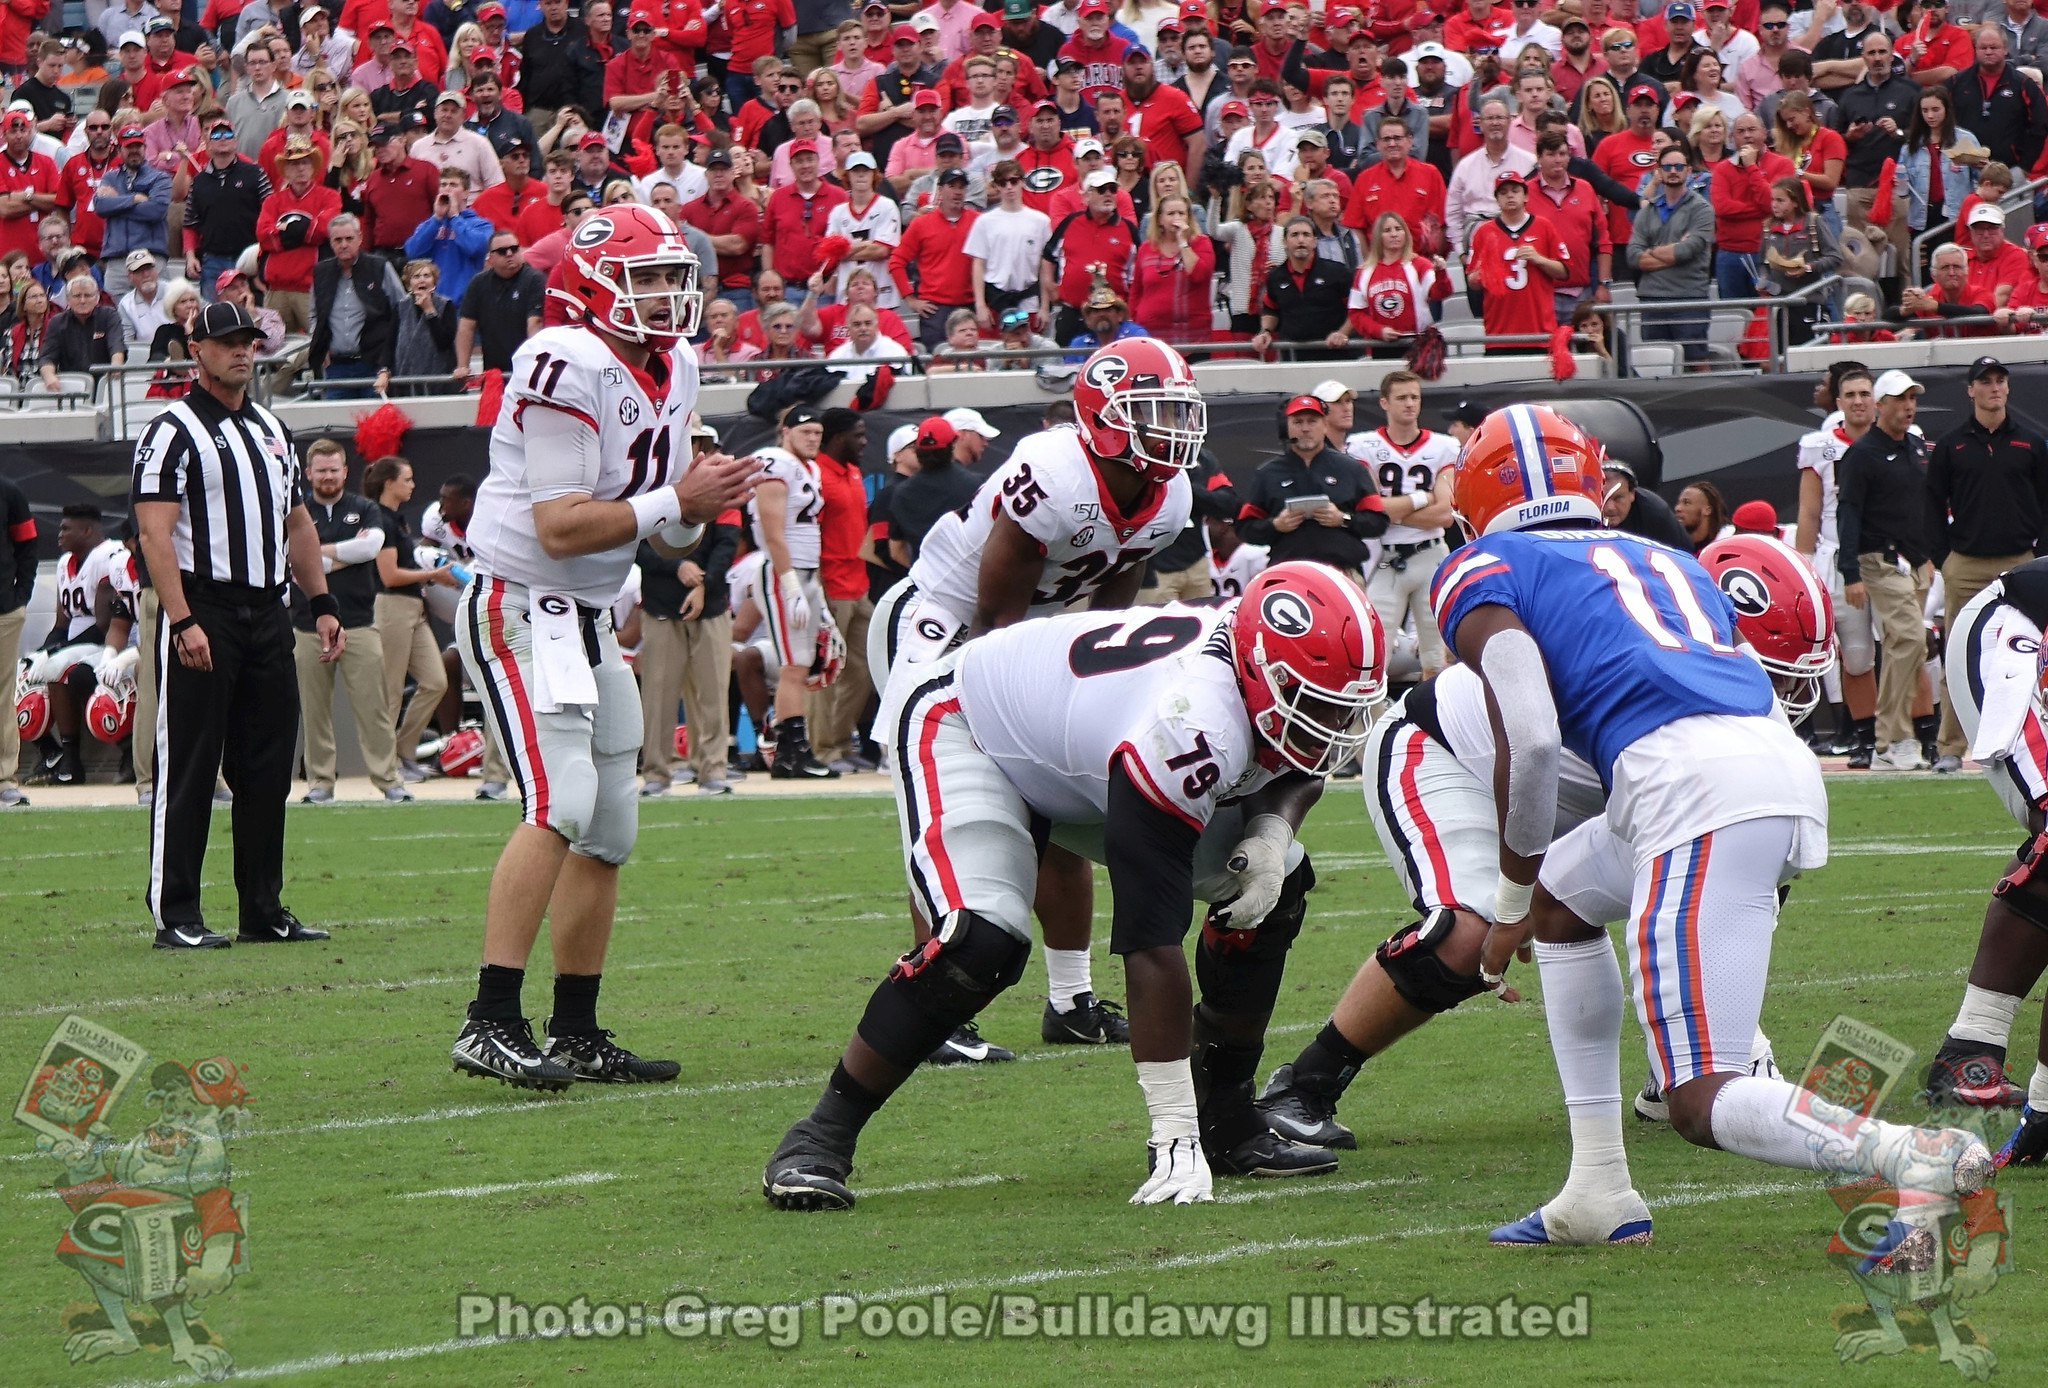 Jake Fromm (11) gets ready to take a snap against Florida in 2019.